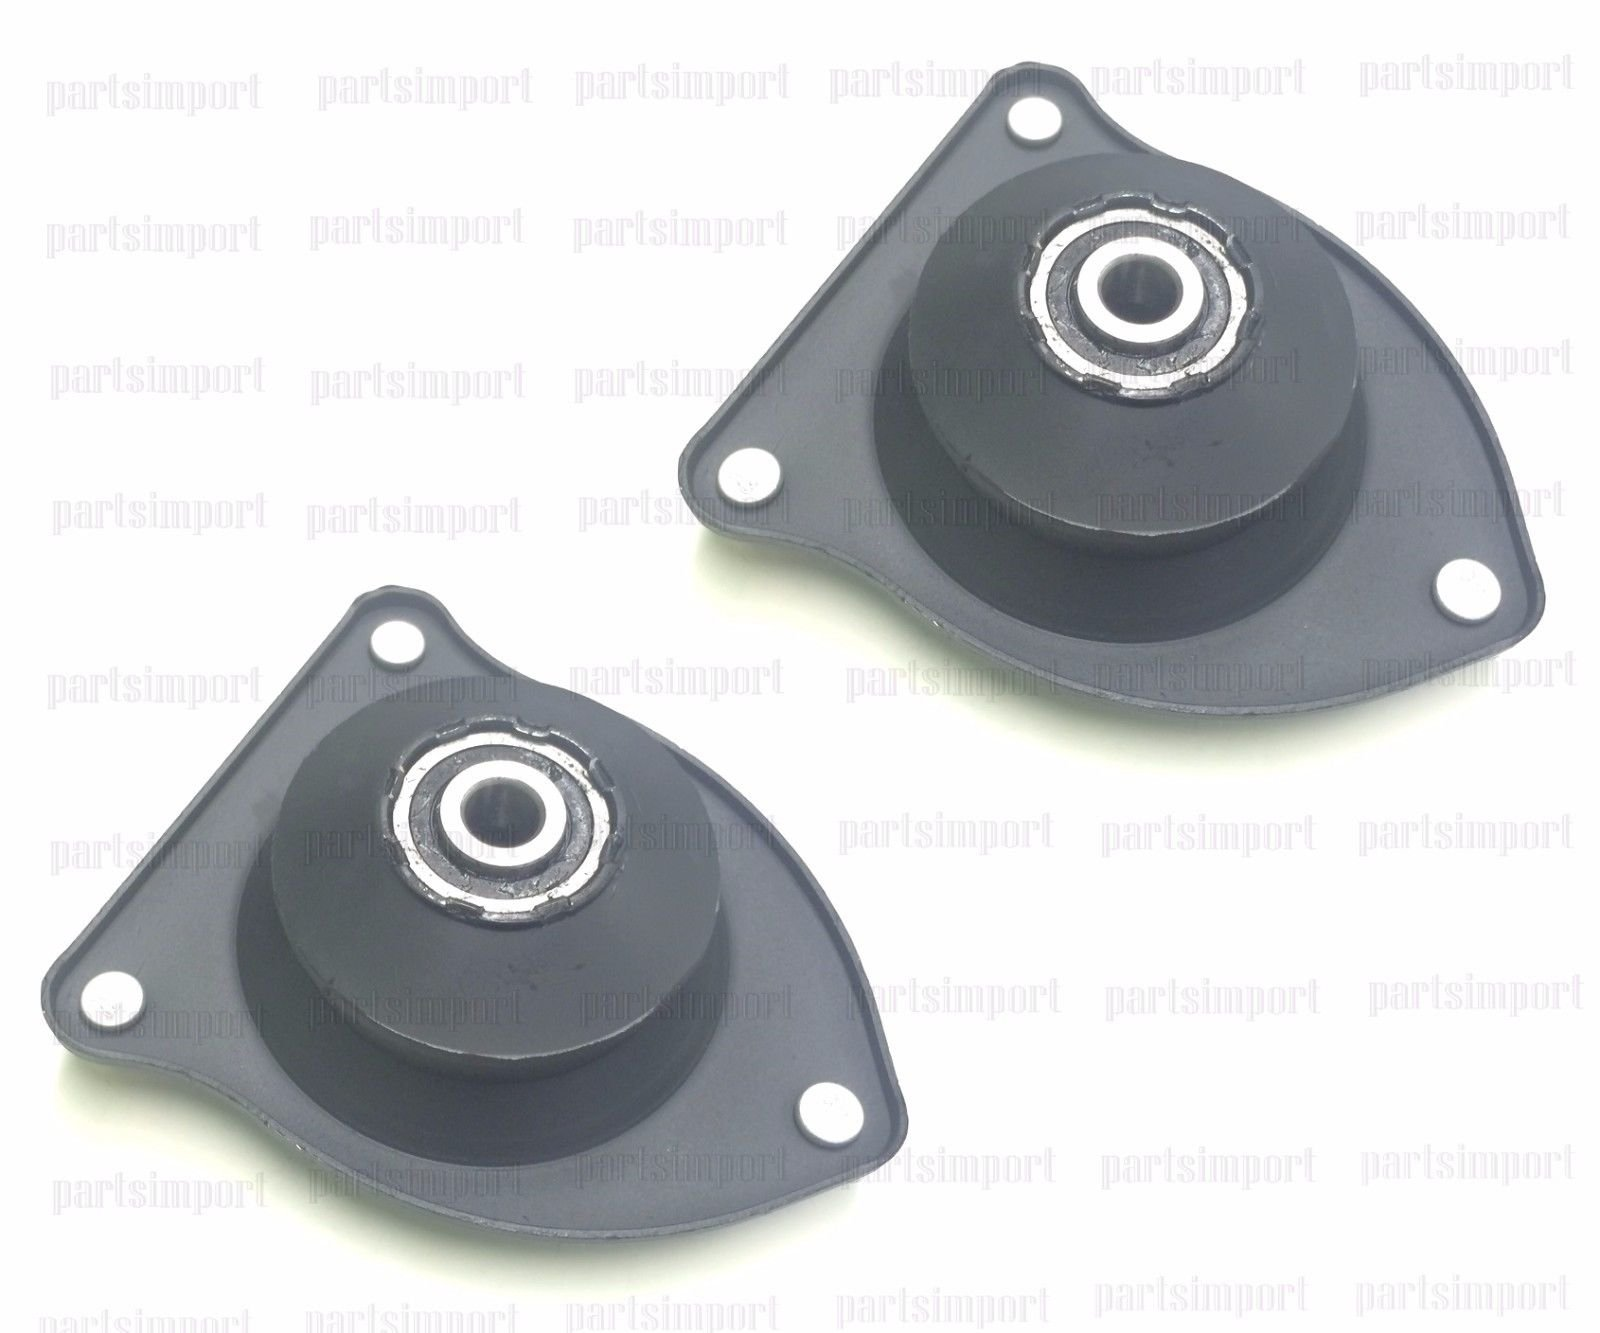 Mini Cooper 02-06 R50 R52 R53 Front Suspension Strut Mounts with Bearings L + R